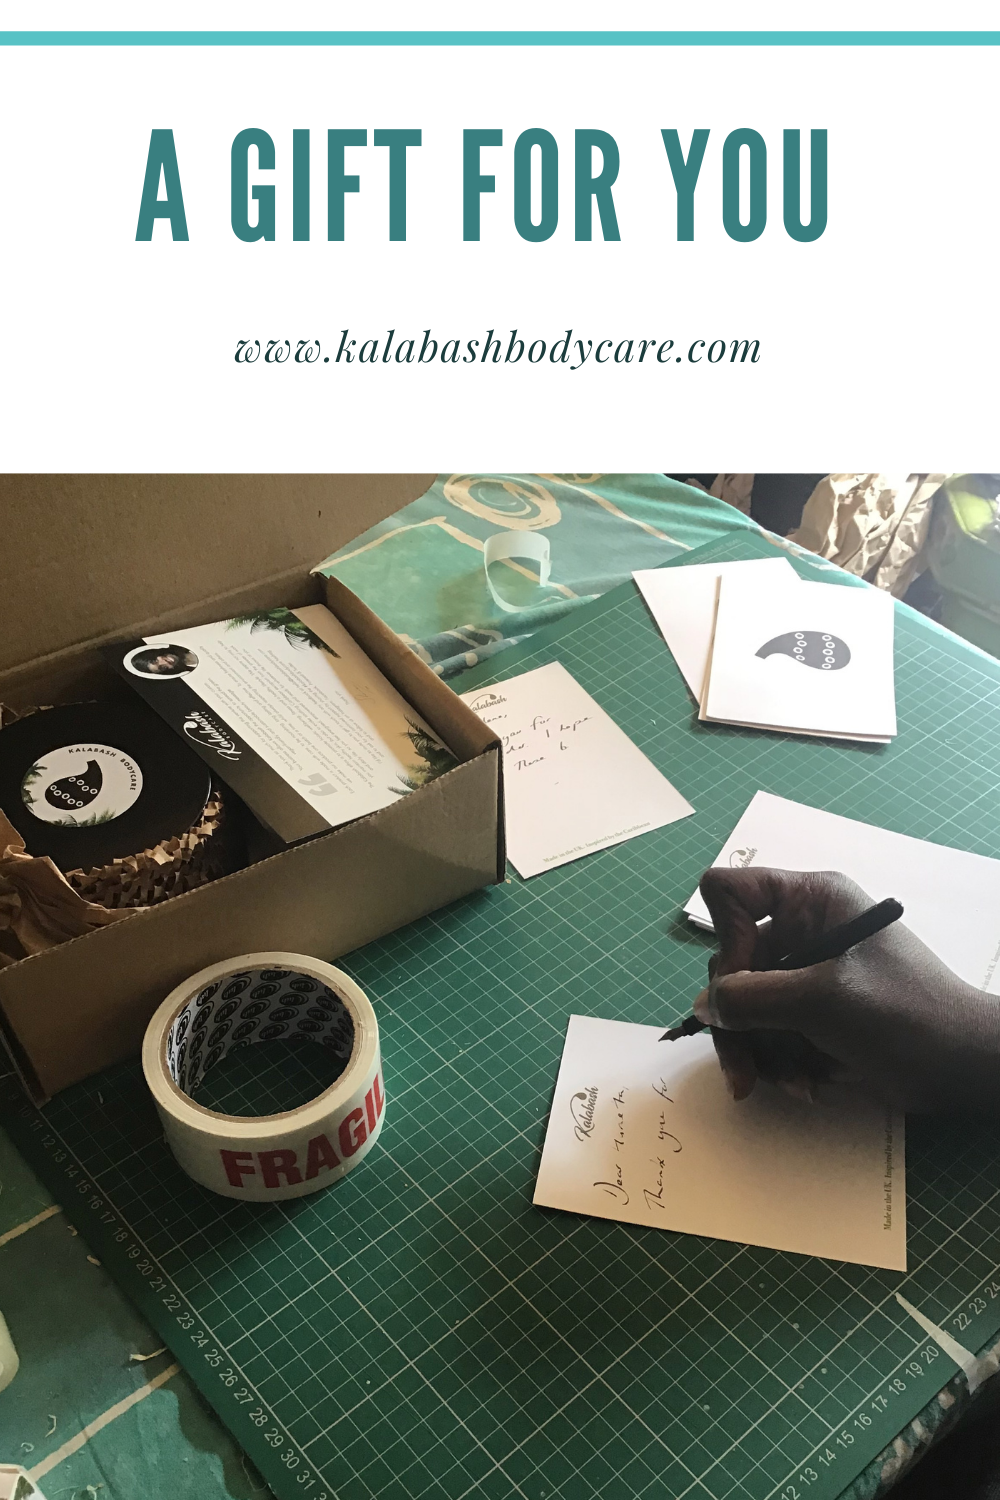 Dark skinned hand writing a thank you note with ink pen on cutting board with Kalabash Bodycare products and cards